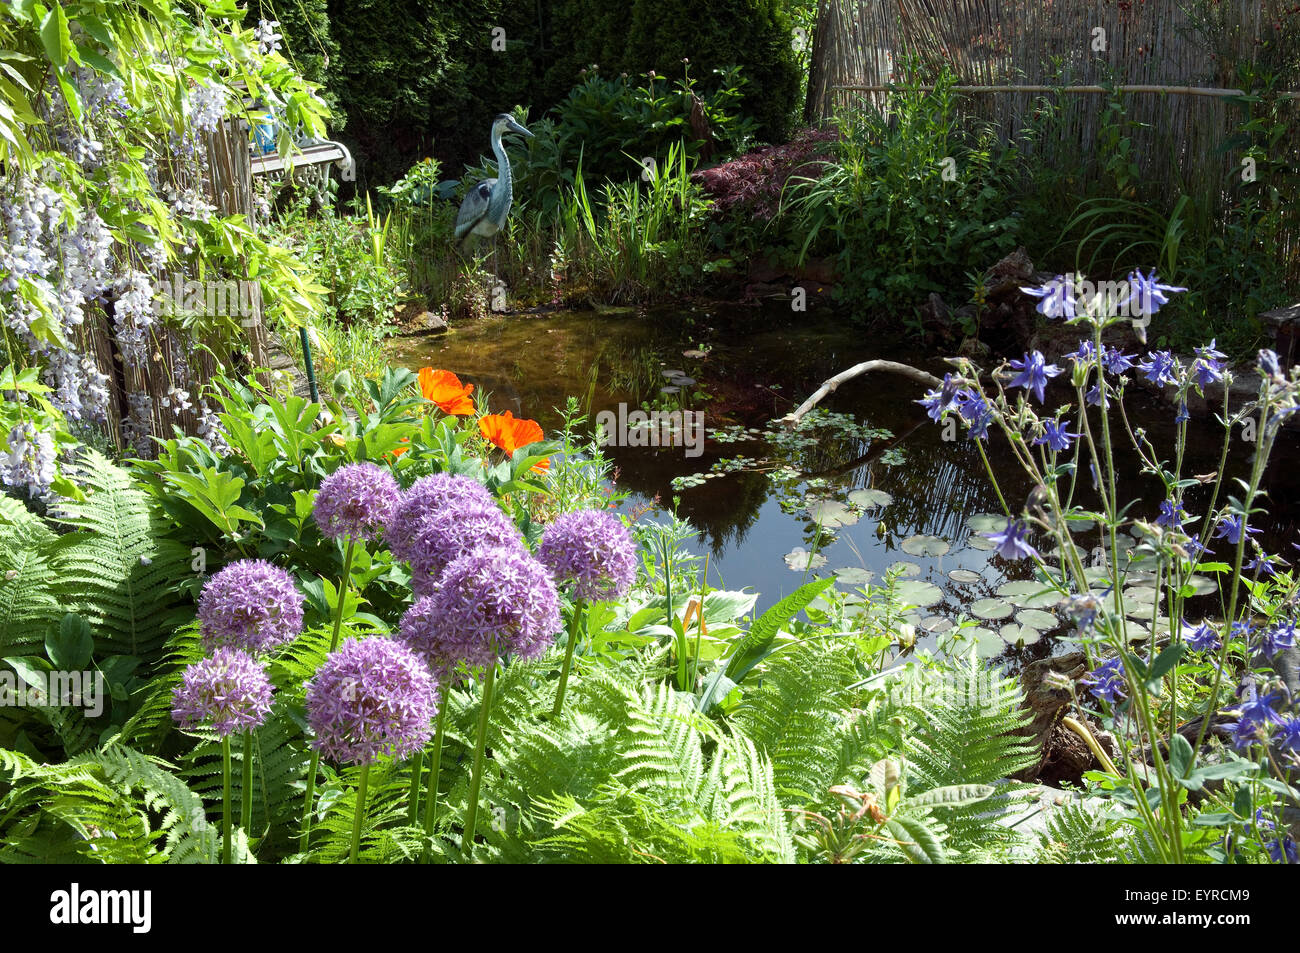 Gartenteich  Gartenteich, Garden pond Stock Photo, Royalty Free Image: 85952057 ...